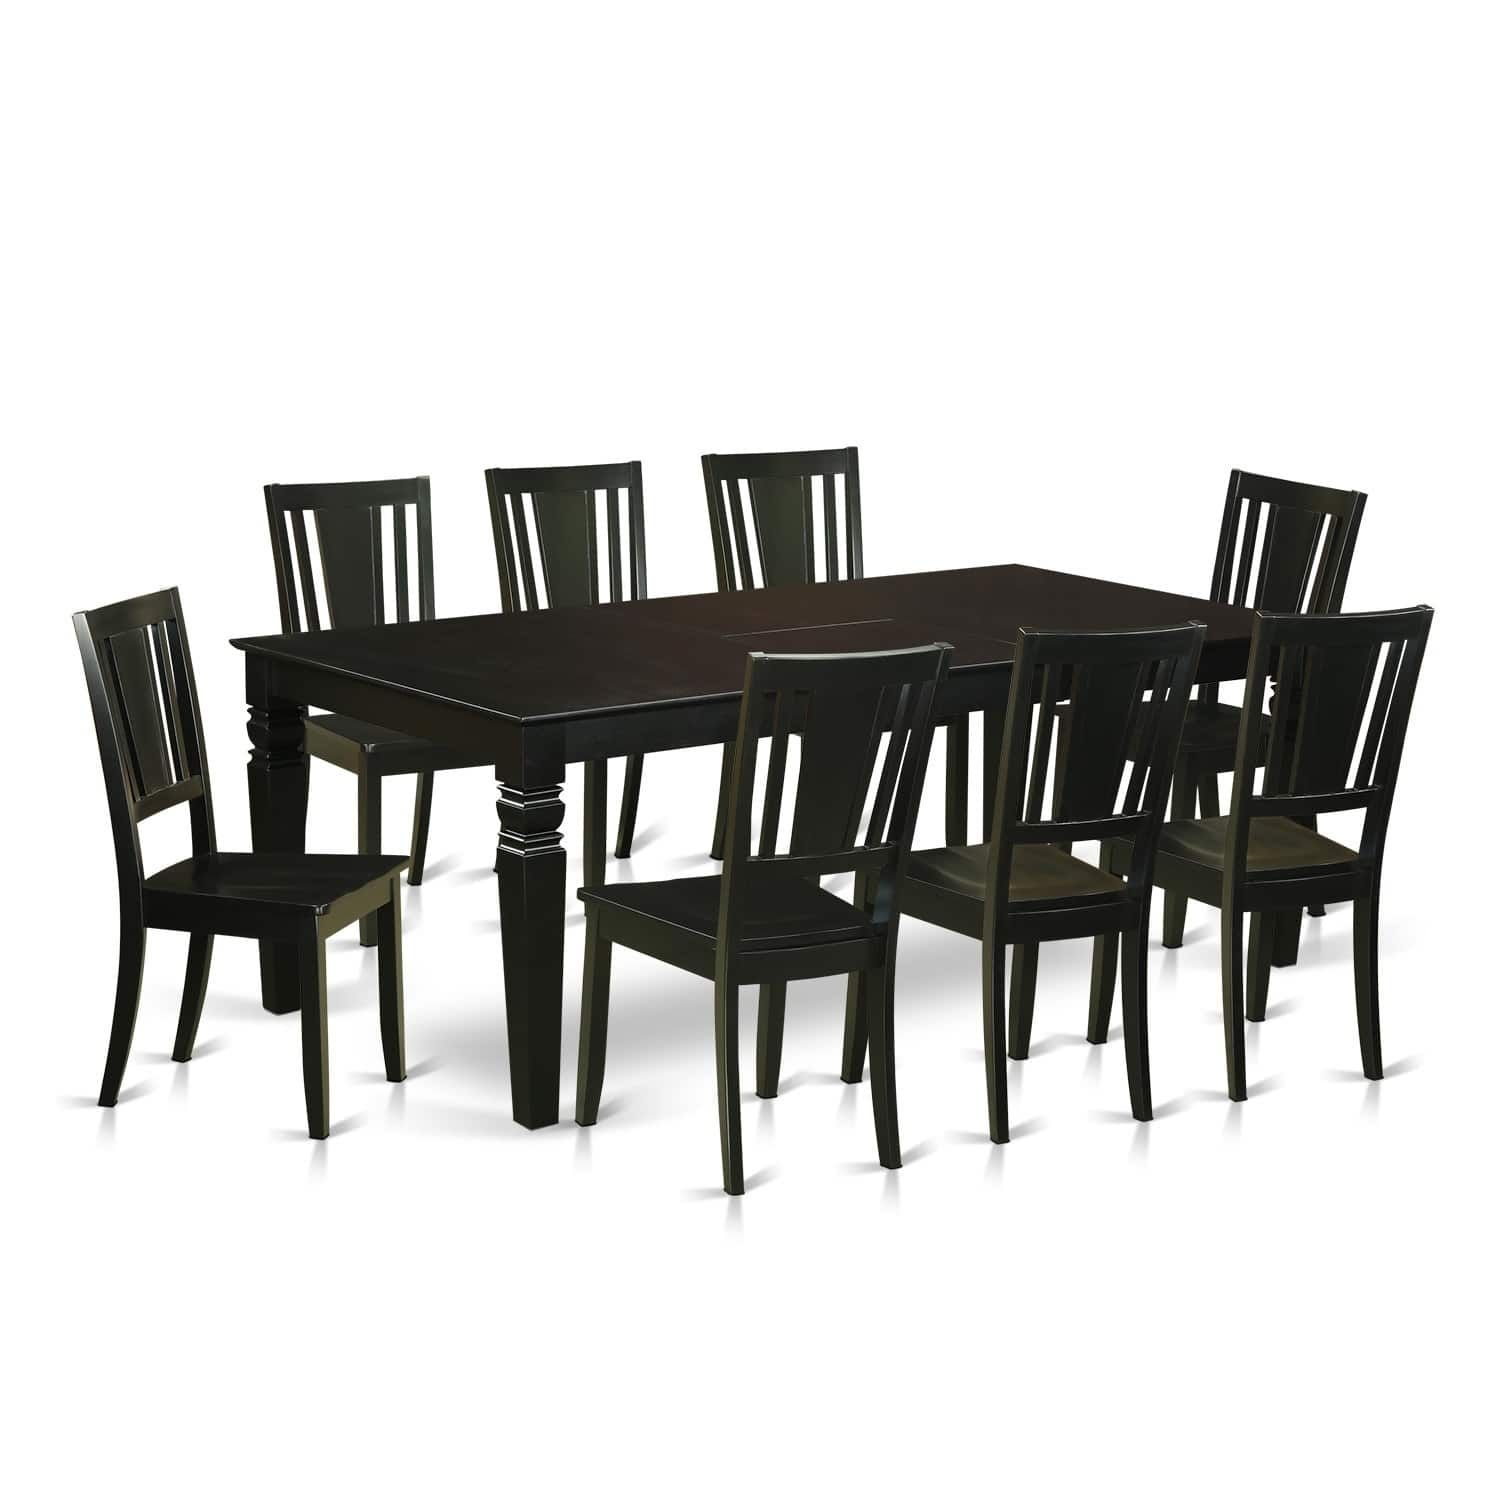 Lgdu9Blk 9 Pc Dinette Set With A Dining Table And 8 Dining Chairs Amazing 8 Pc Dining Room Set Decorating Inspiration